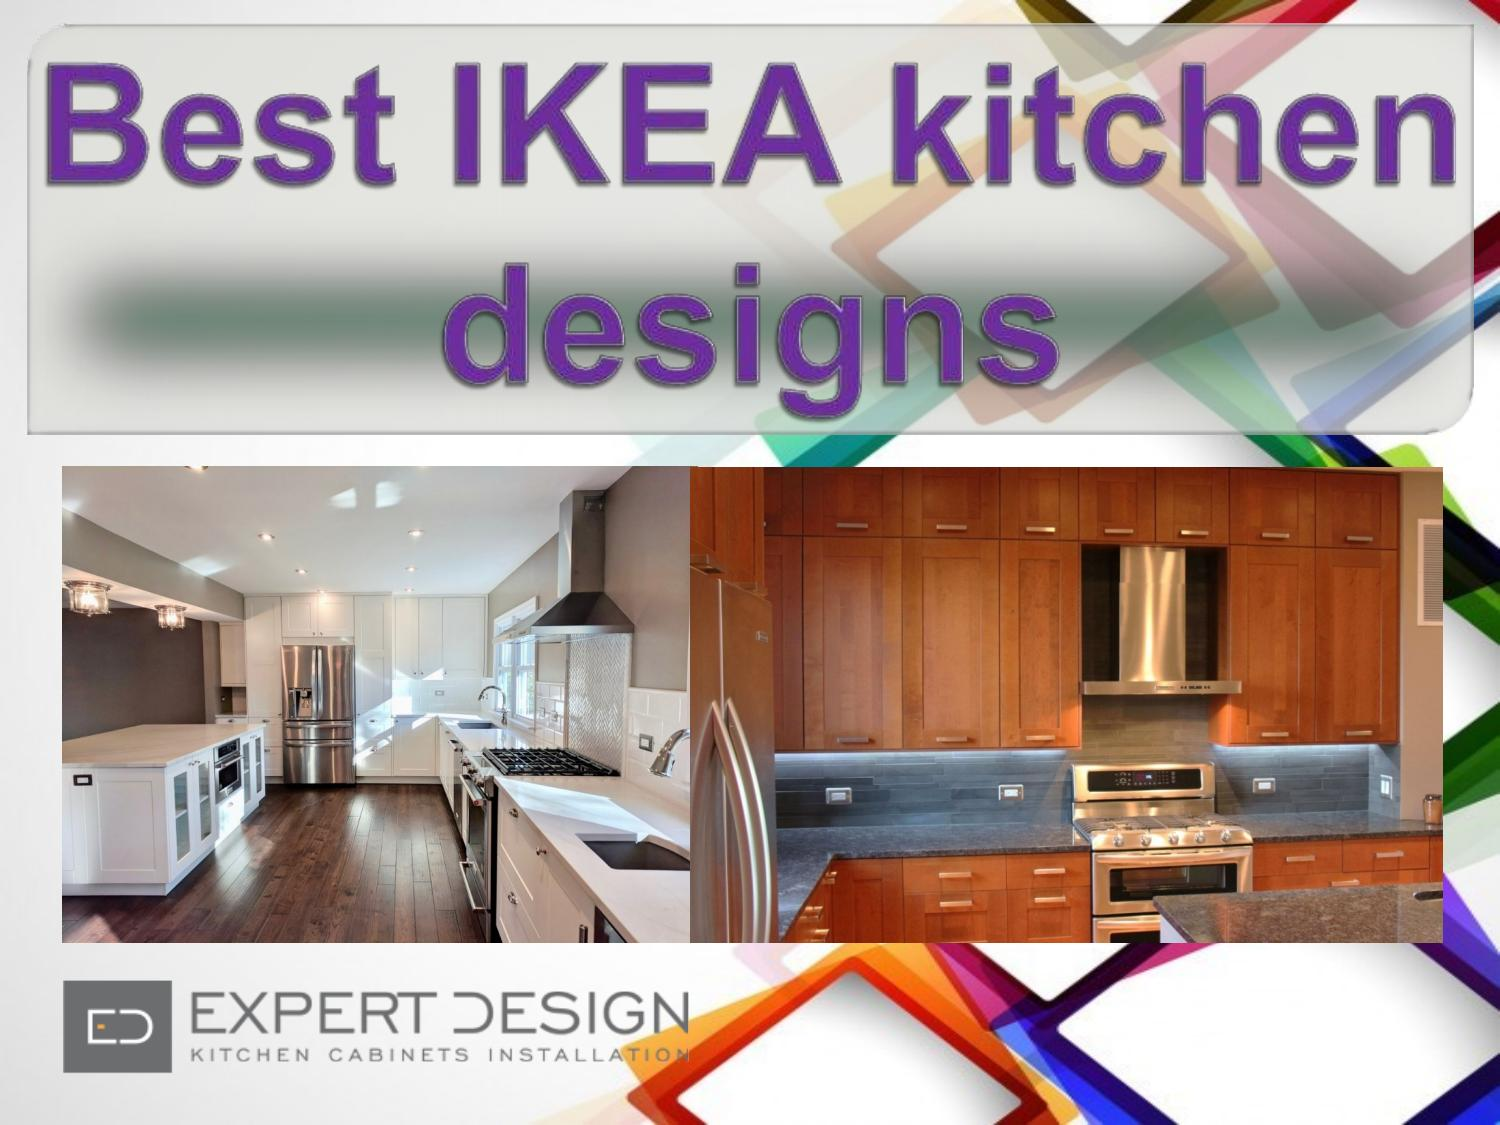 Best Ikea Kitchen Design By Expert Design Llc Issuu